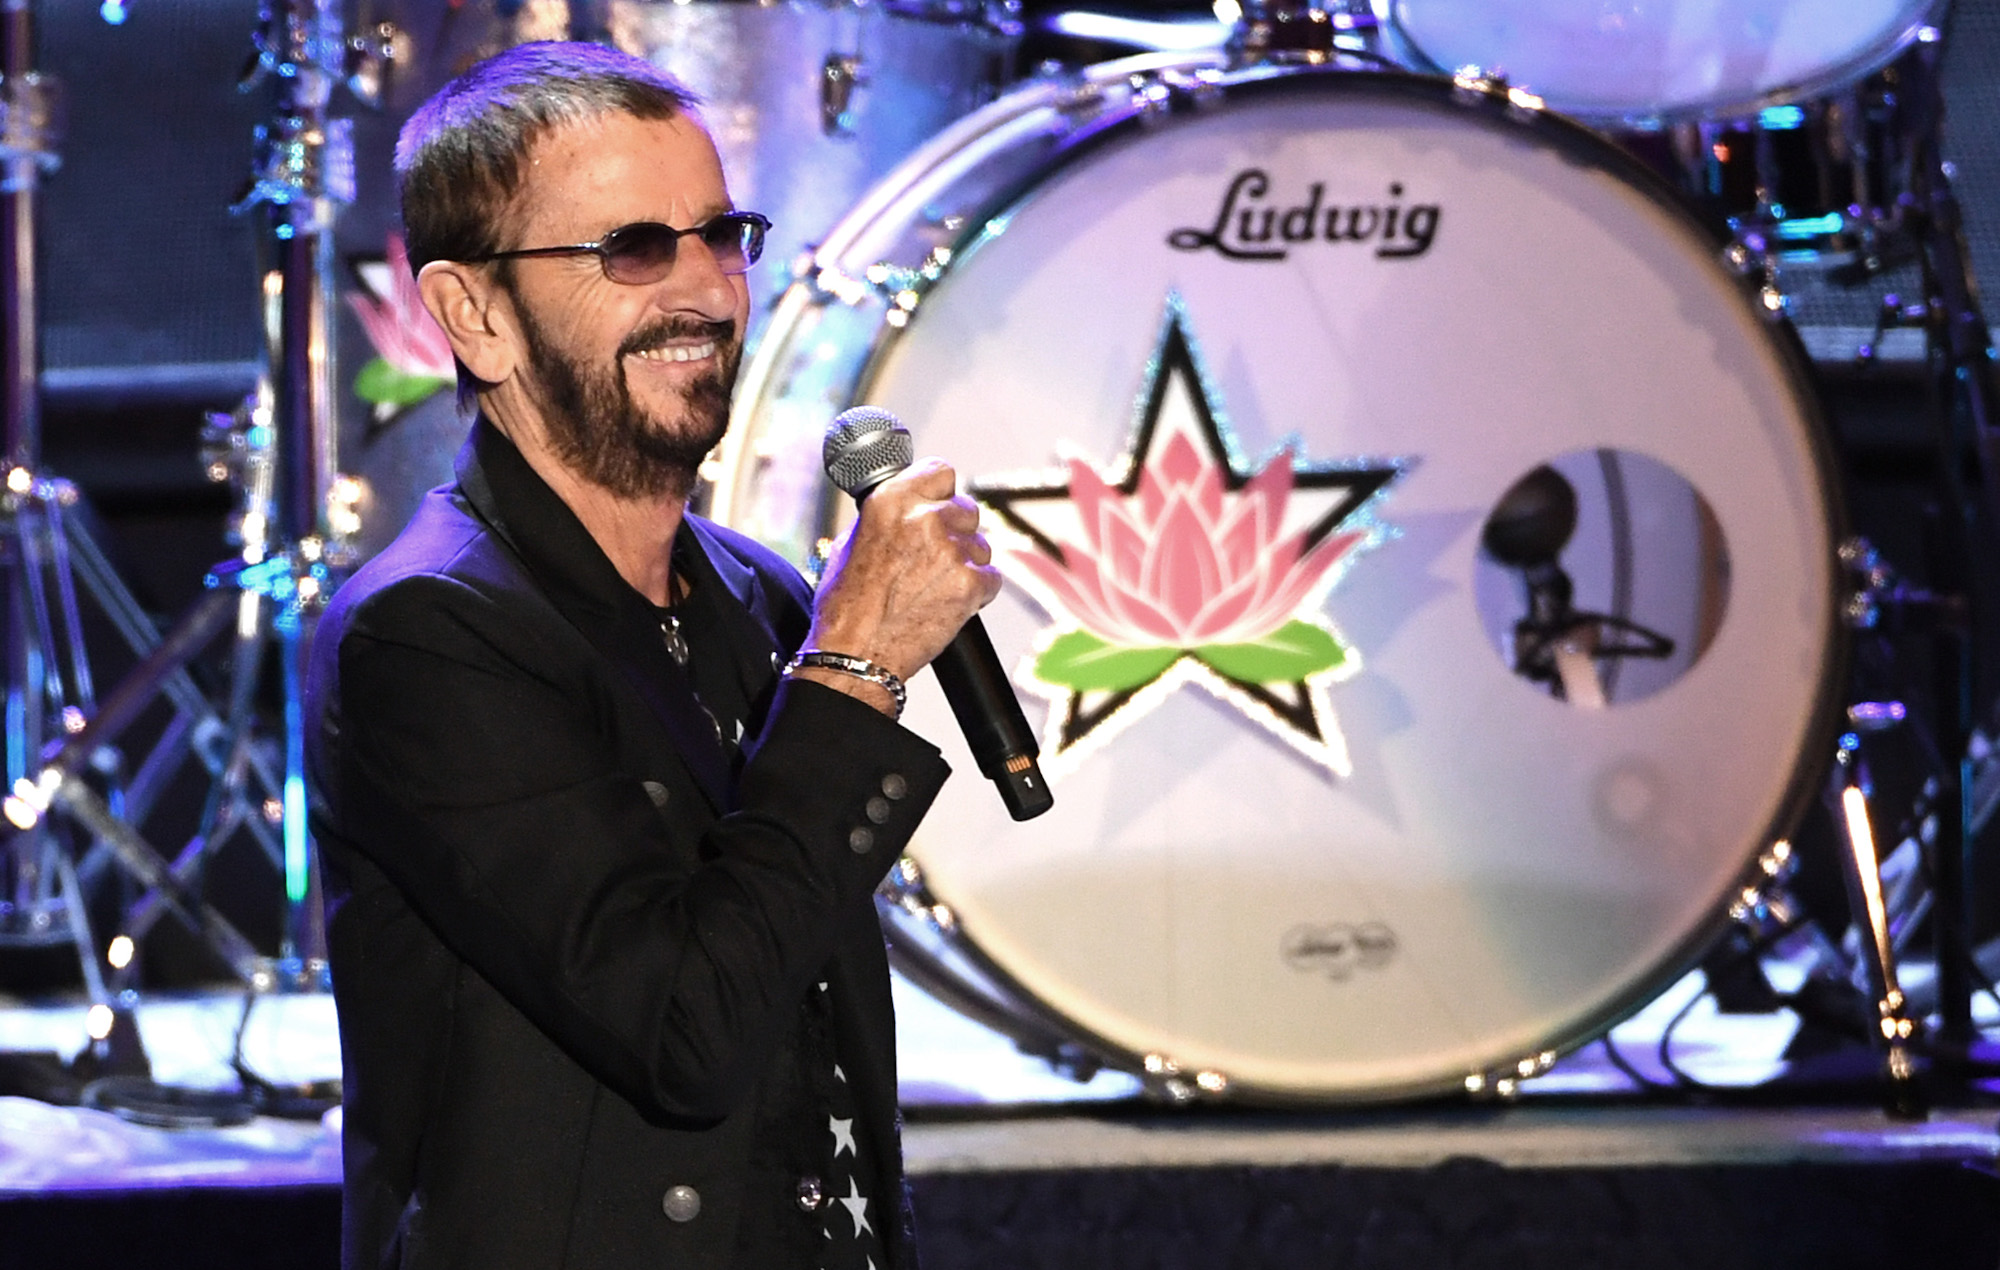 Watch Ringo Starr play 'Yellow Submarine' on classroom instruments with Fallon and The Roots